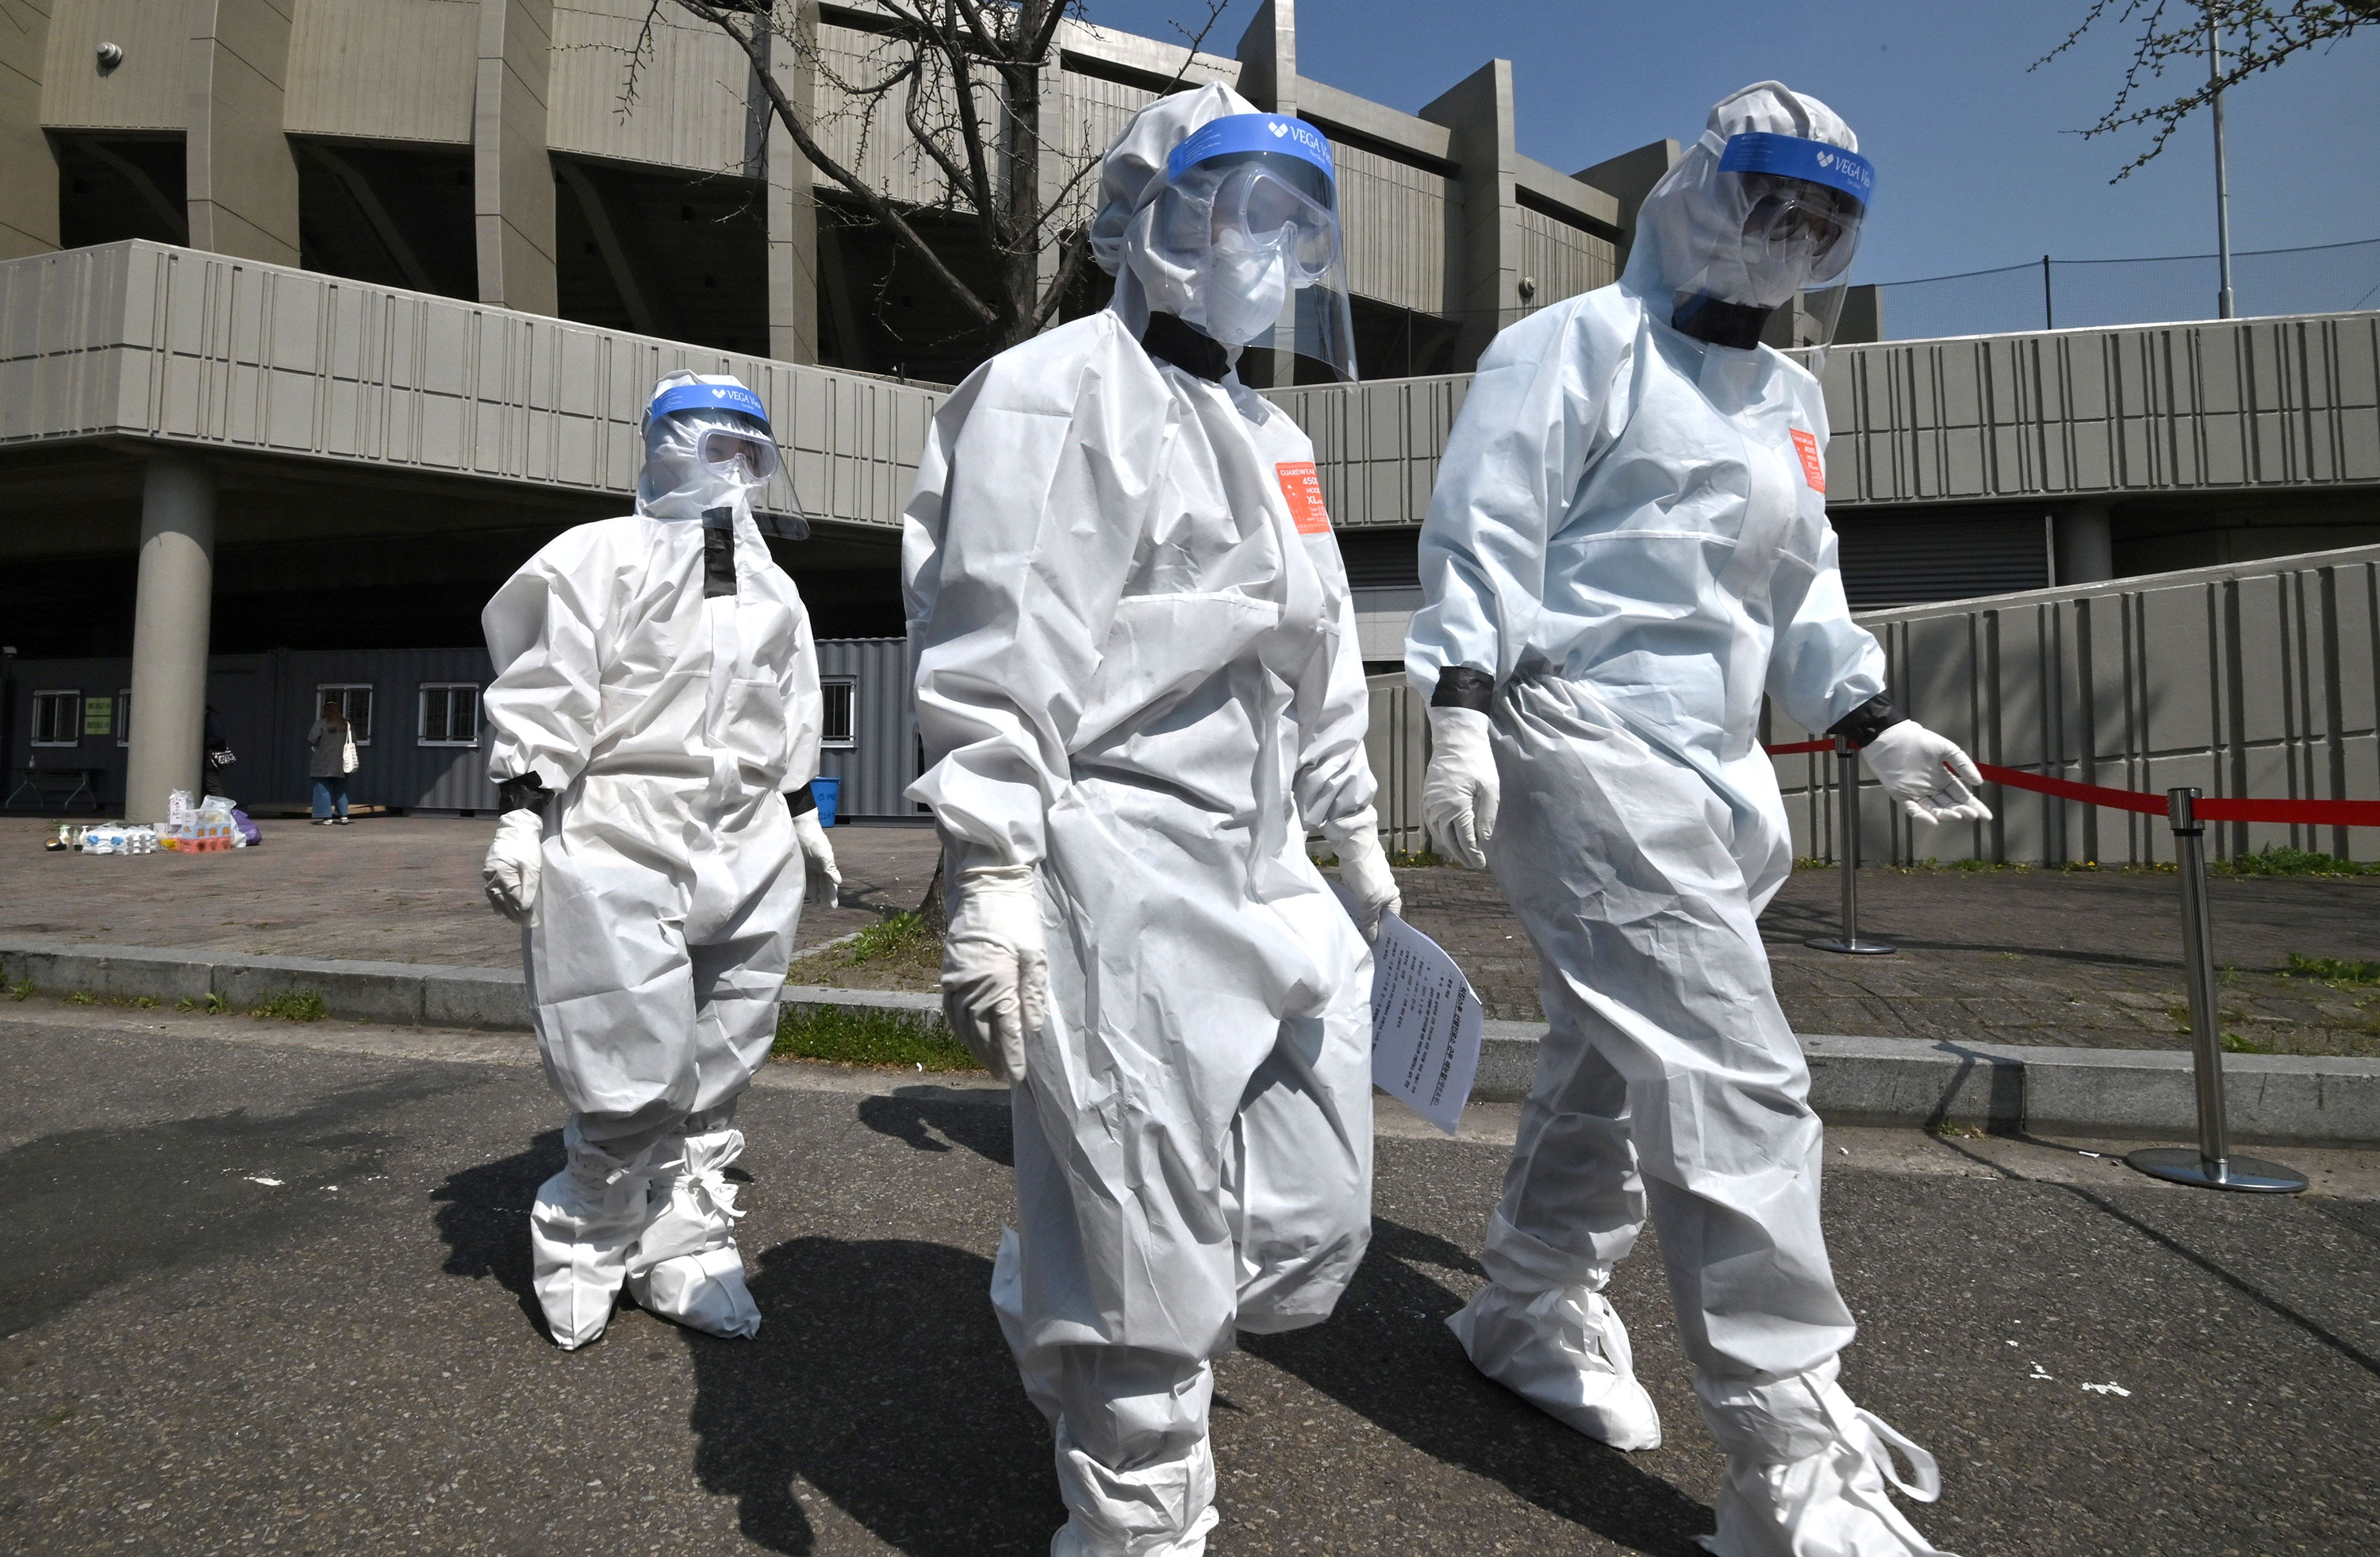 City officials wearing protective clothing arrive at a coronavirus testing station set up at Jamsil Sports Complex in Seoul on April 3.